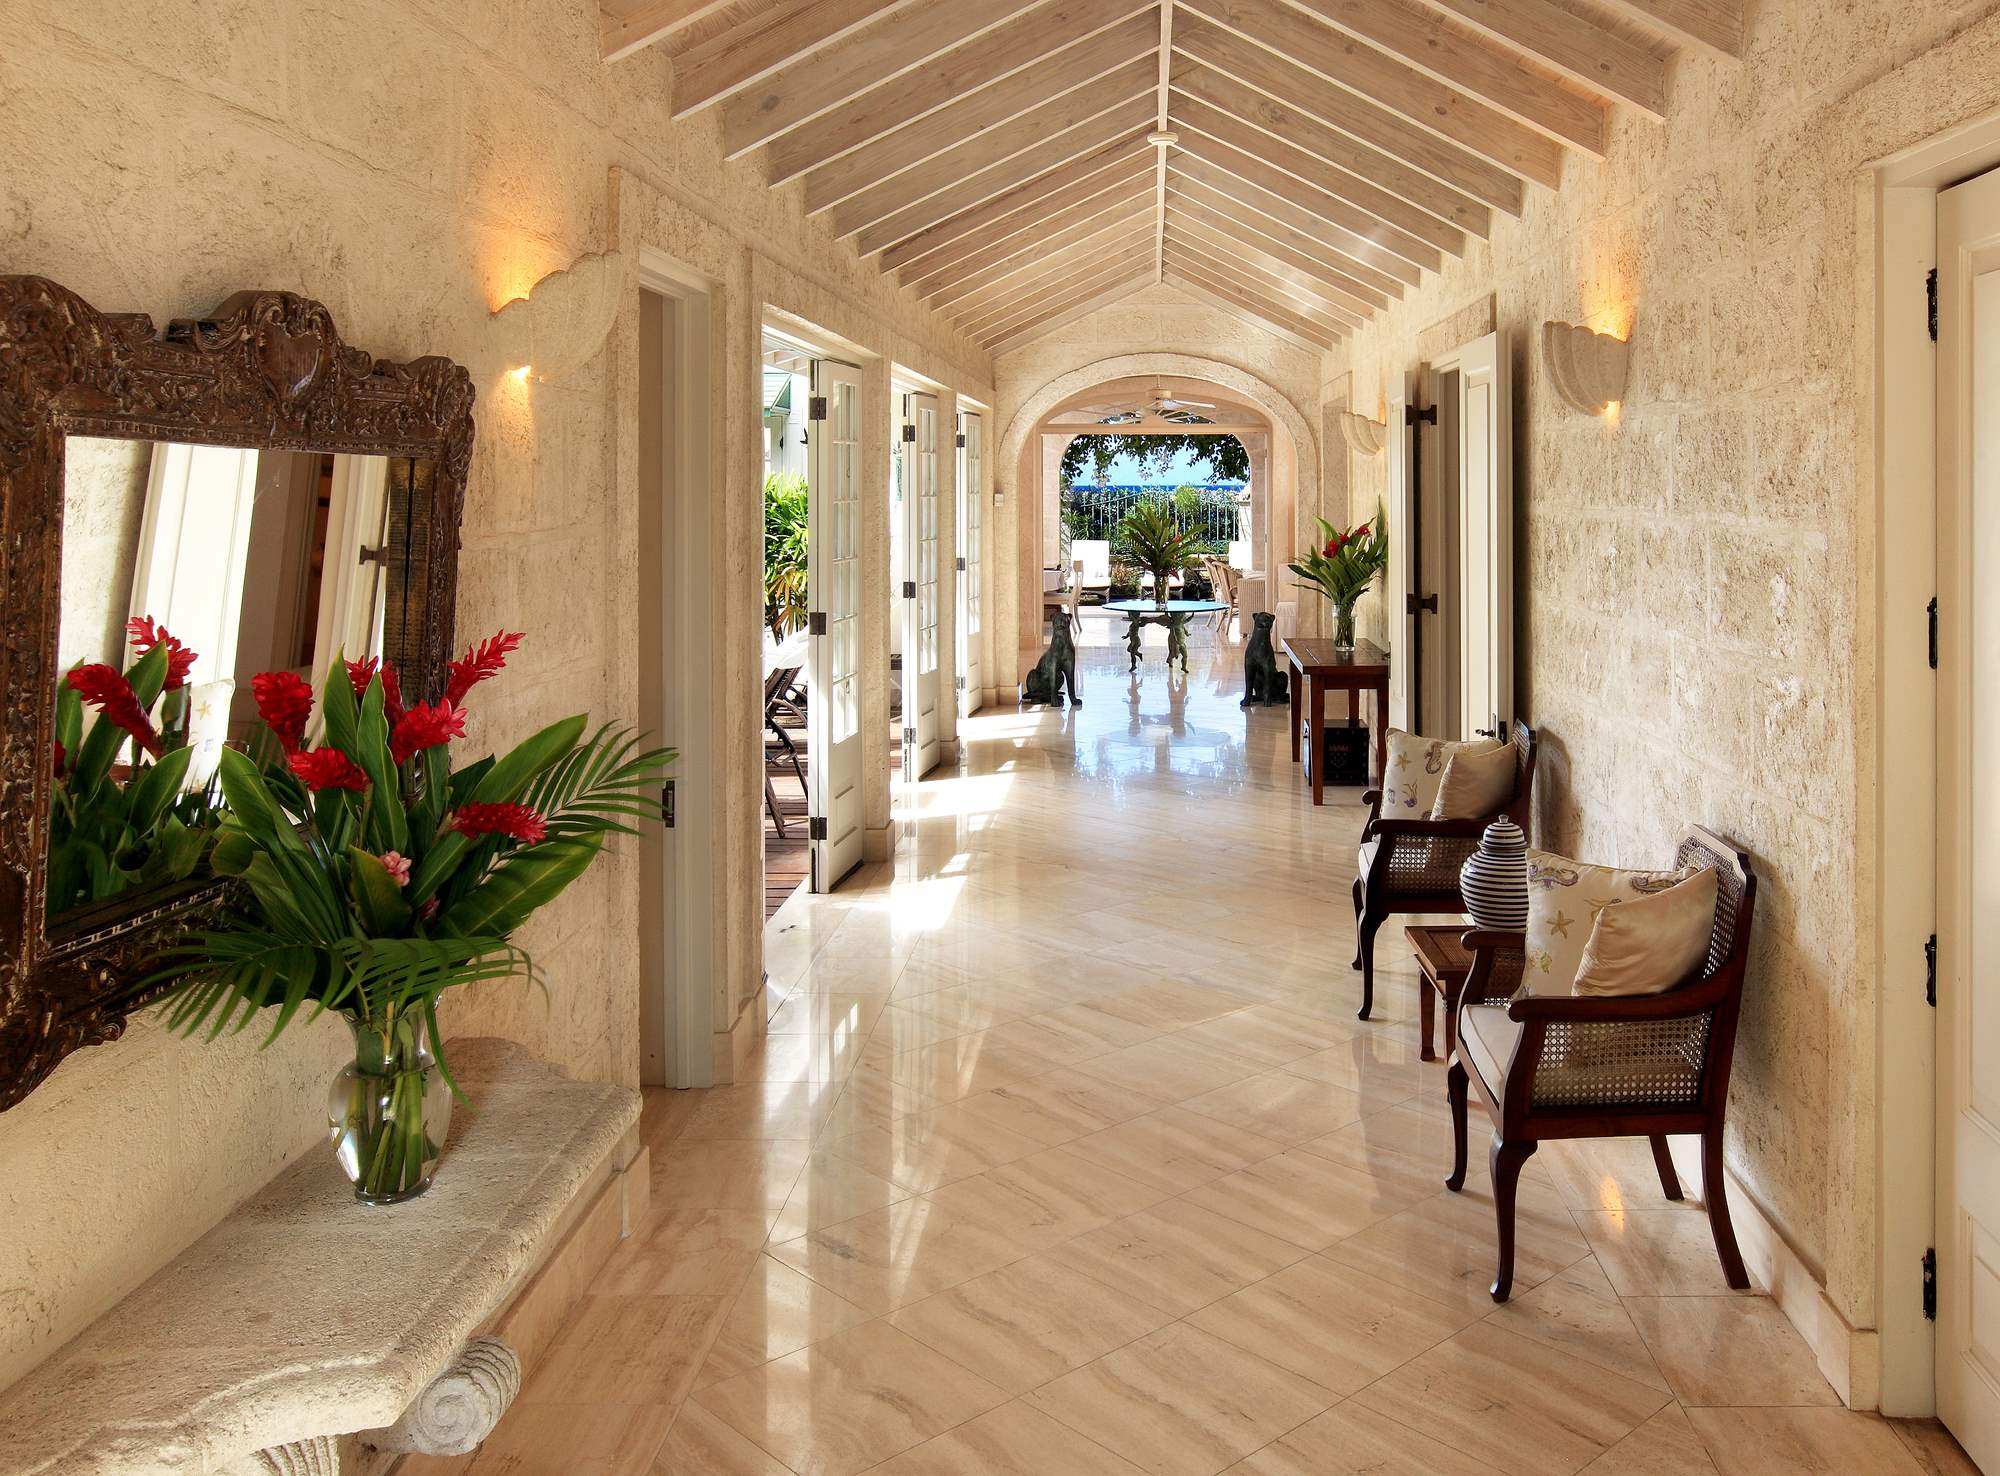 Caprice, 4 bedroom villa in St. James & West Coast, Barbados Photo #7